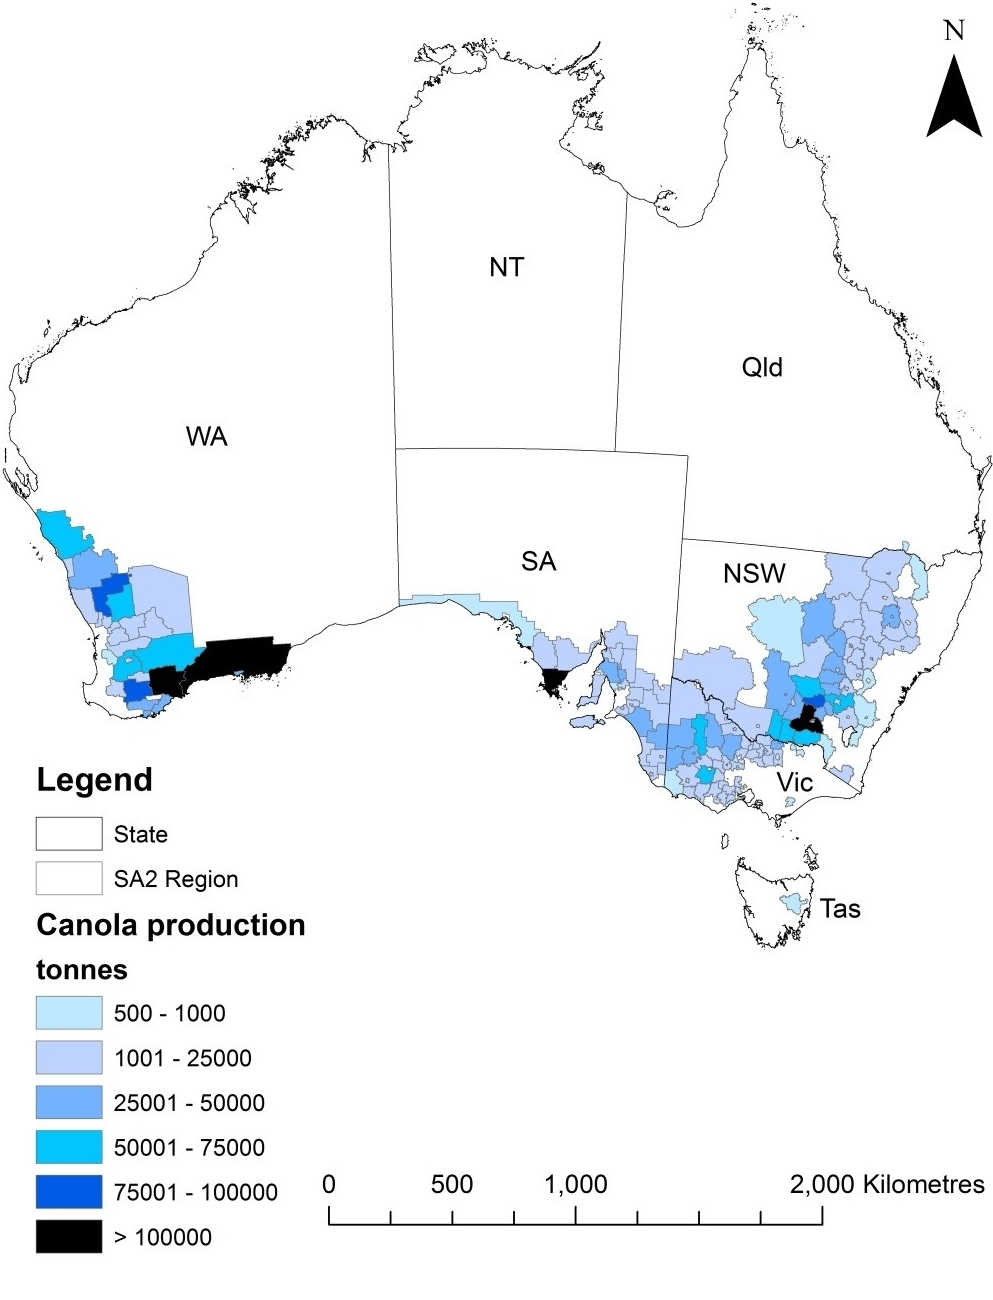 Figure 1. Average canola production in farming regions of Australia (2010/11-2013/14). (Source: Australian Bureau of Statistics and the CSIRO)